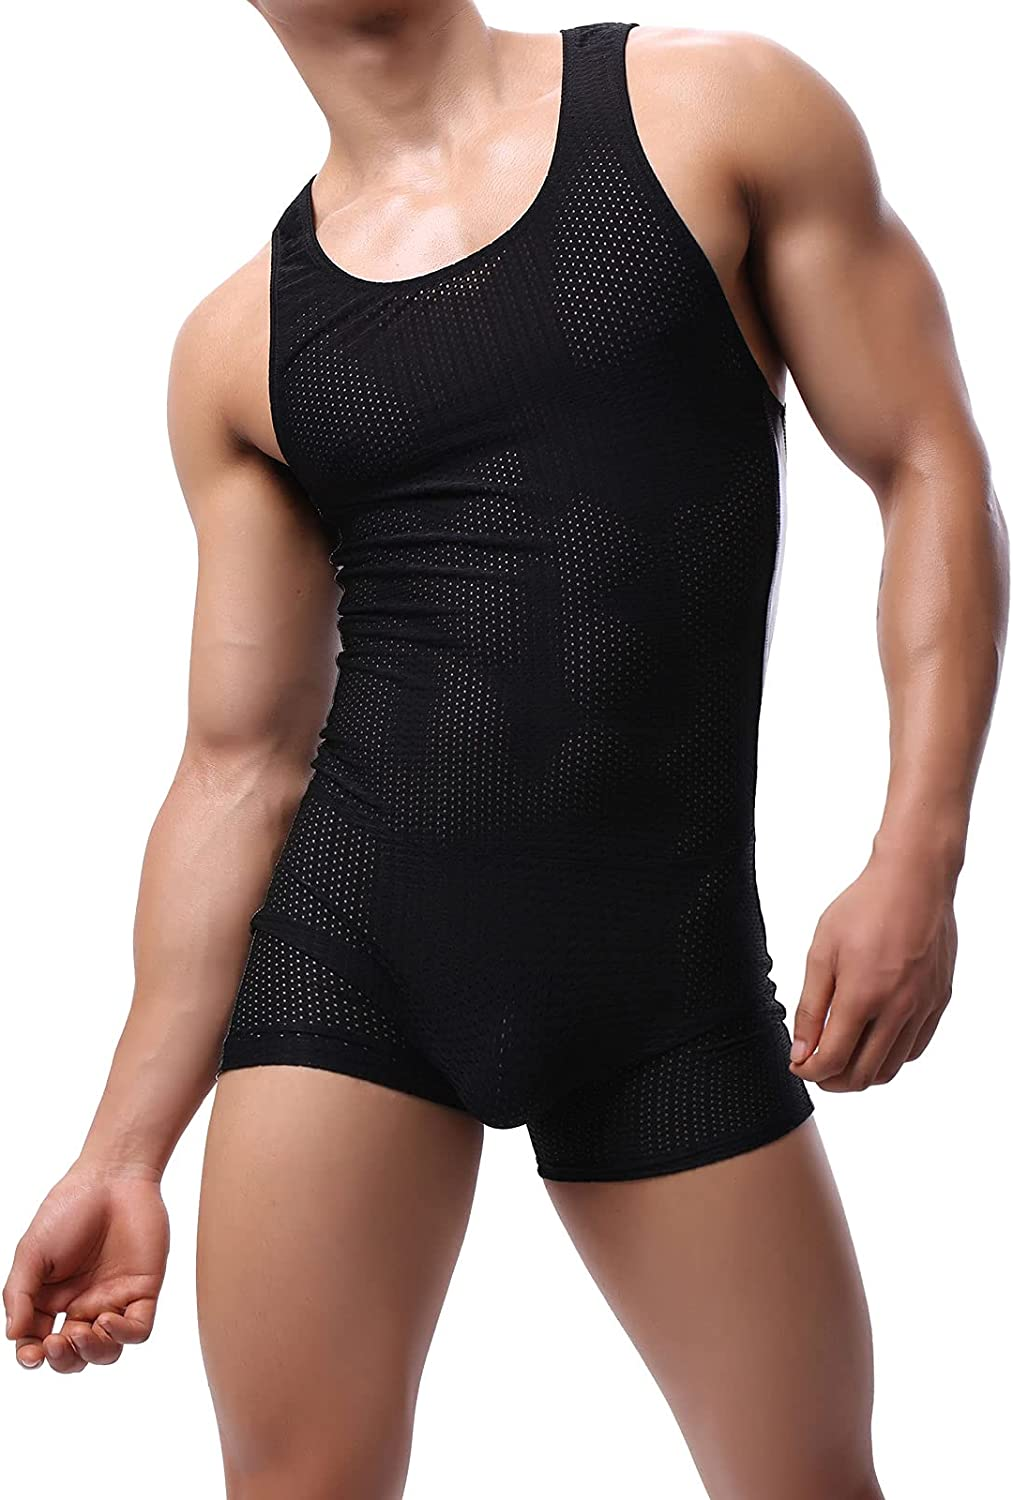 Oakland Mall QiaTi Mens Athletic Supporters Weekly update Wrestling Boxers Sport B Jumpsuit